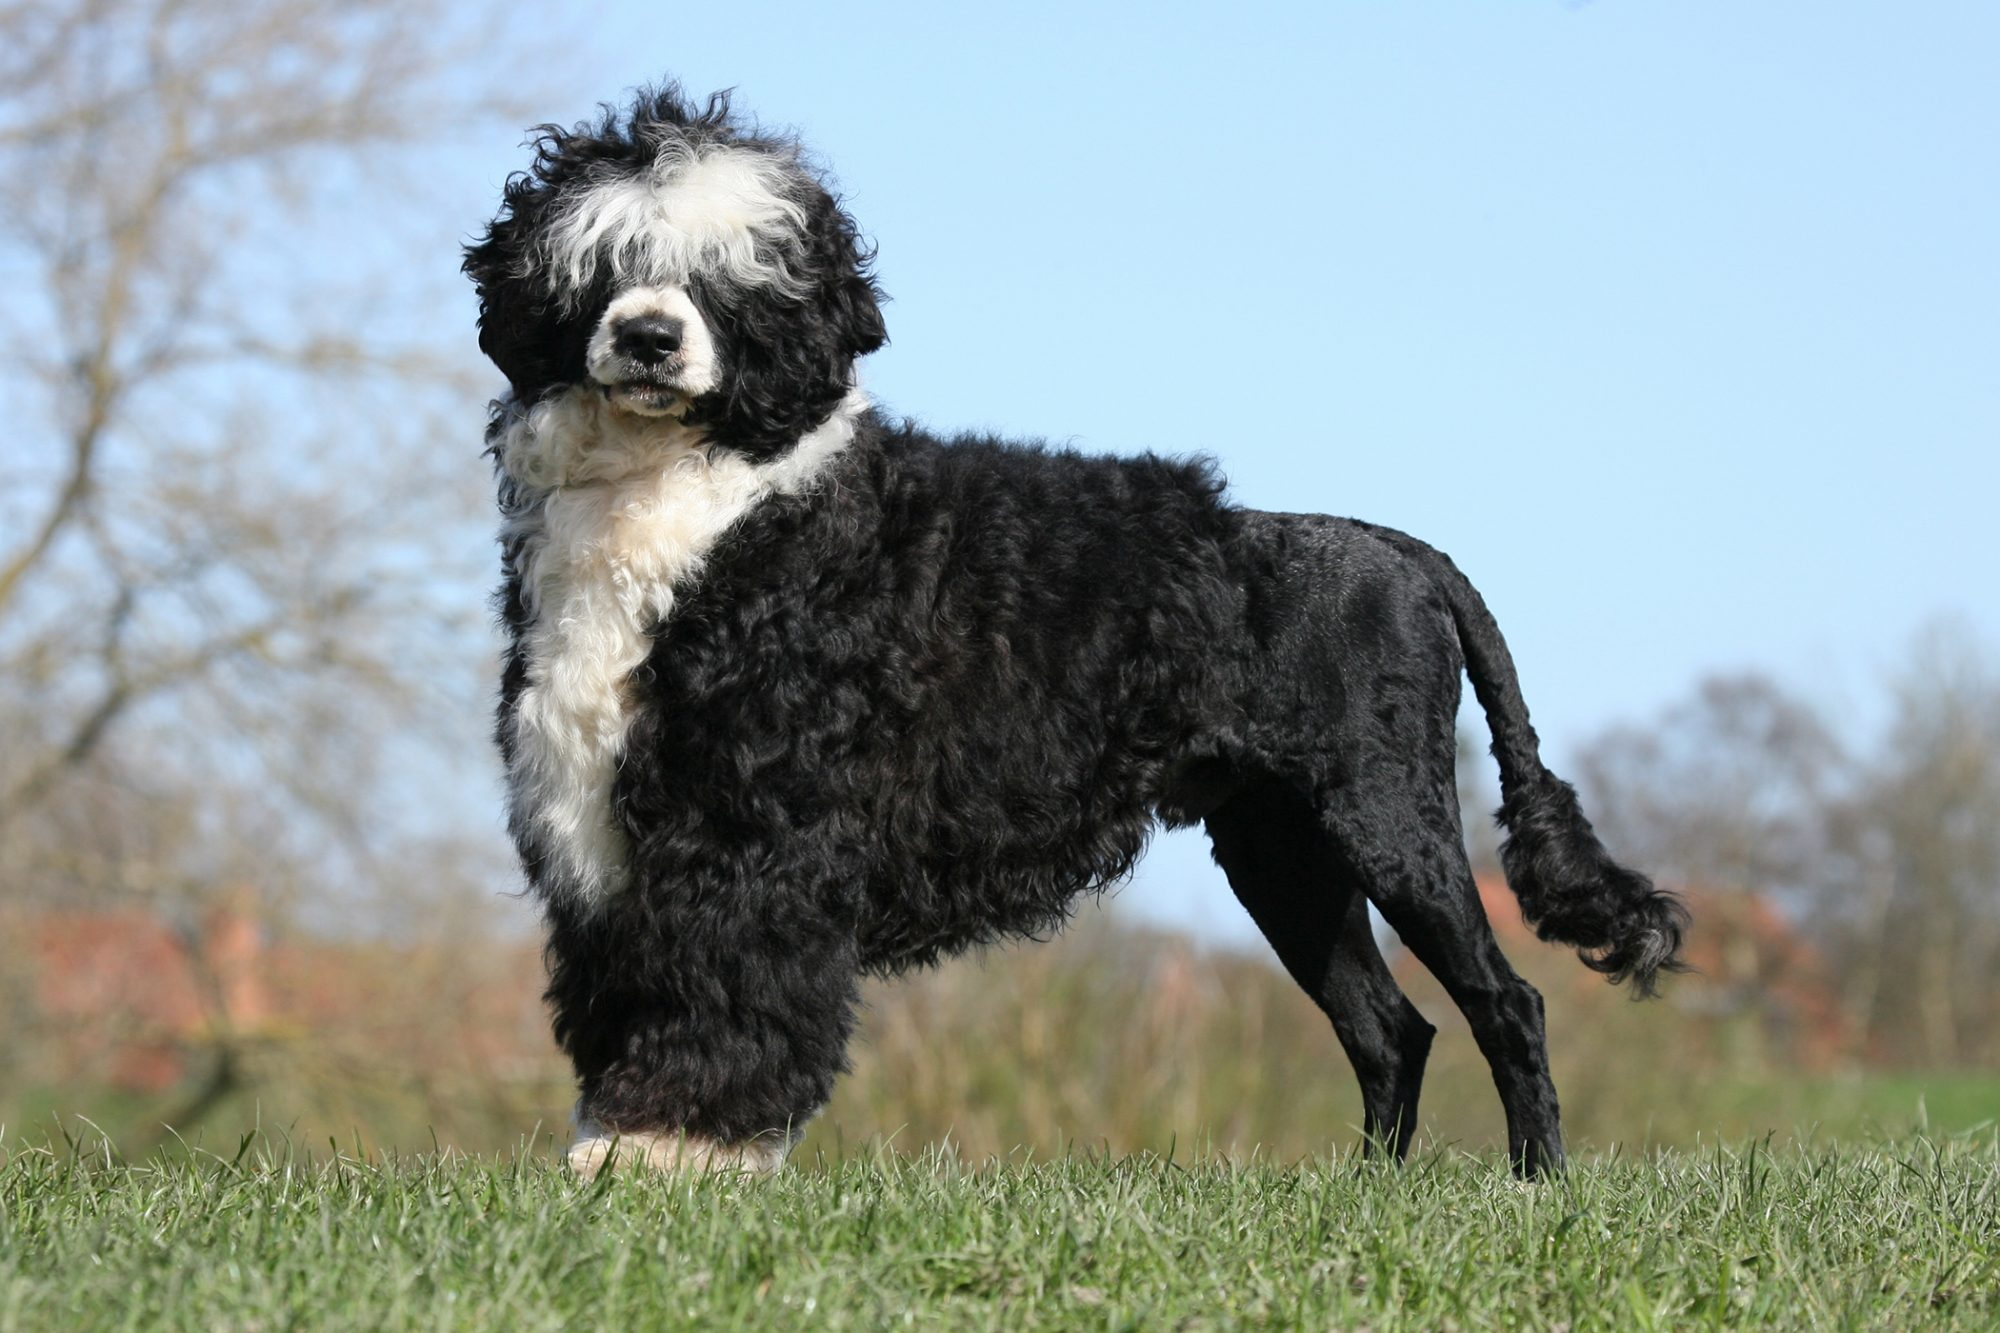 Portuguese Water Dog standing in the grass